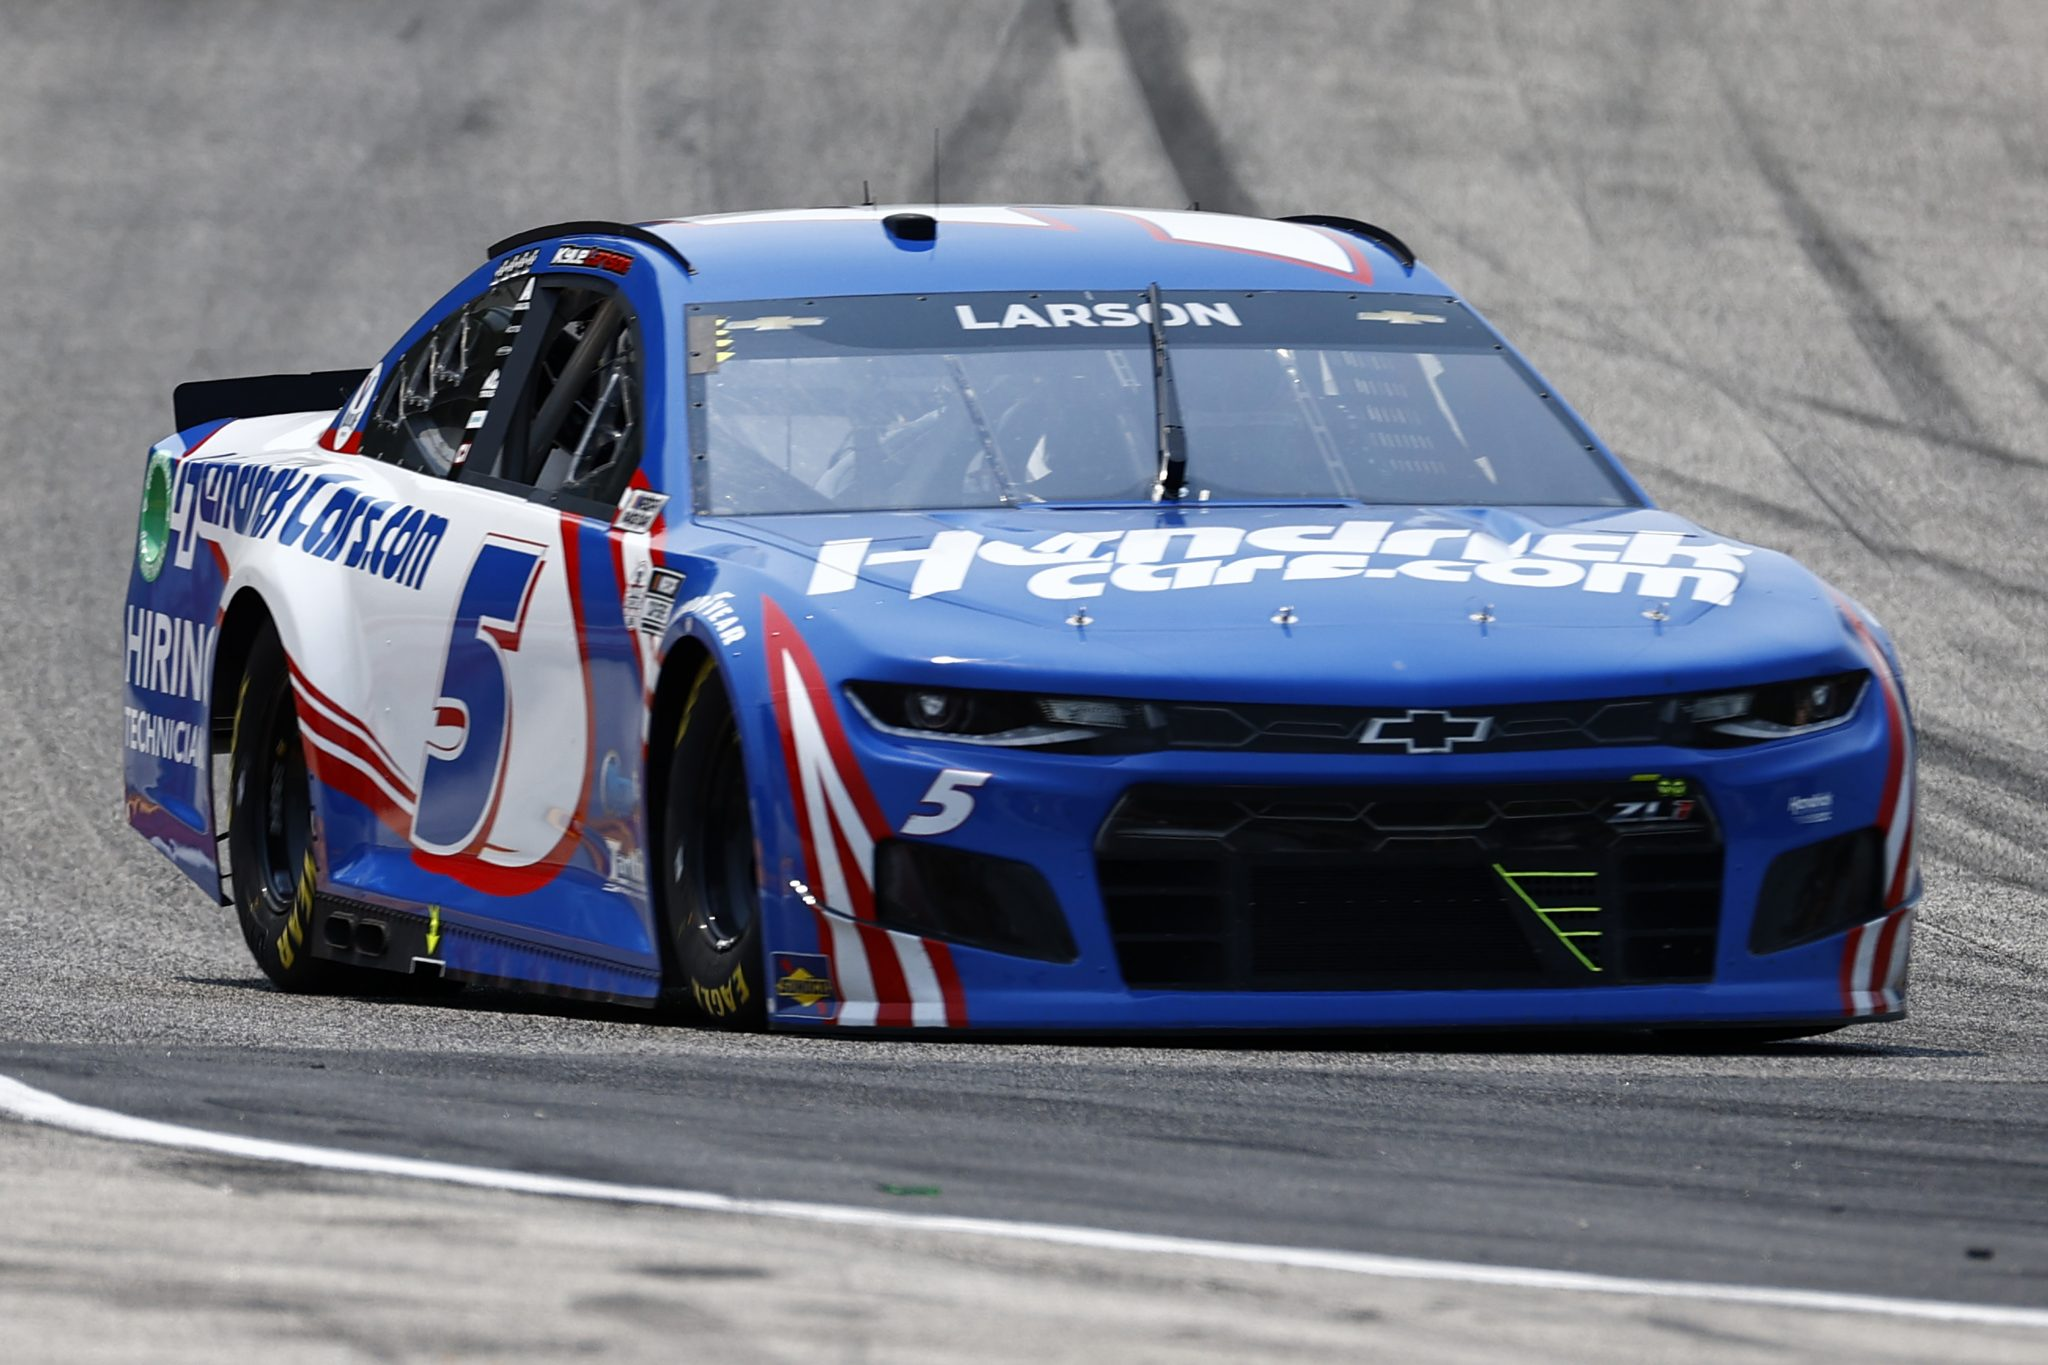 ELKHART LAKE, WISCONSIN - JULY 03: Kyle Larson, driver of the #5 HendrickCars.com Chevrolet, drives during practice for the NASCAR Cup Series Jockey Made in America 250 Presented by Kwik Trip at Road America on July 03, 2021 in Elkhart Lake, Wisconsin. (Photo by Jared C. Tilton/Getty Images) | Getty Images